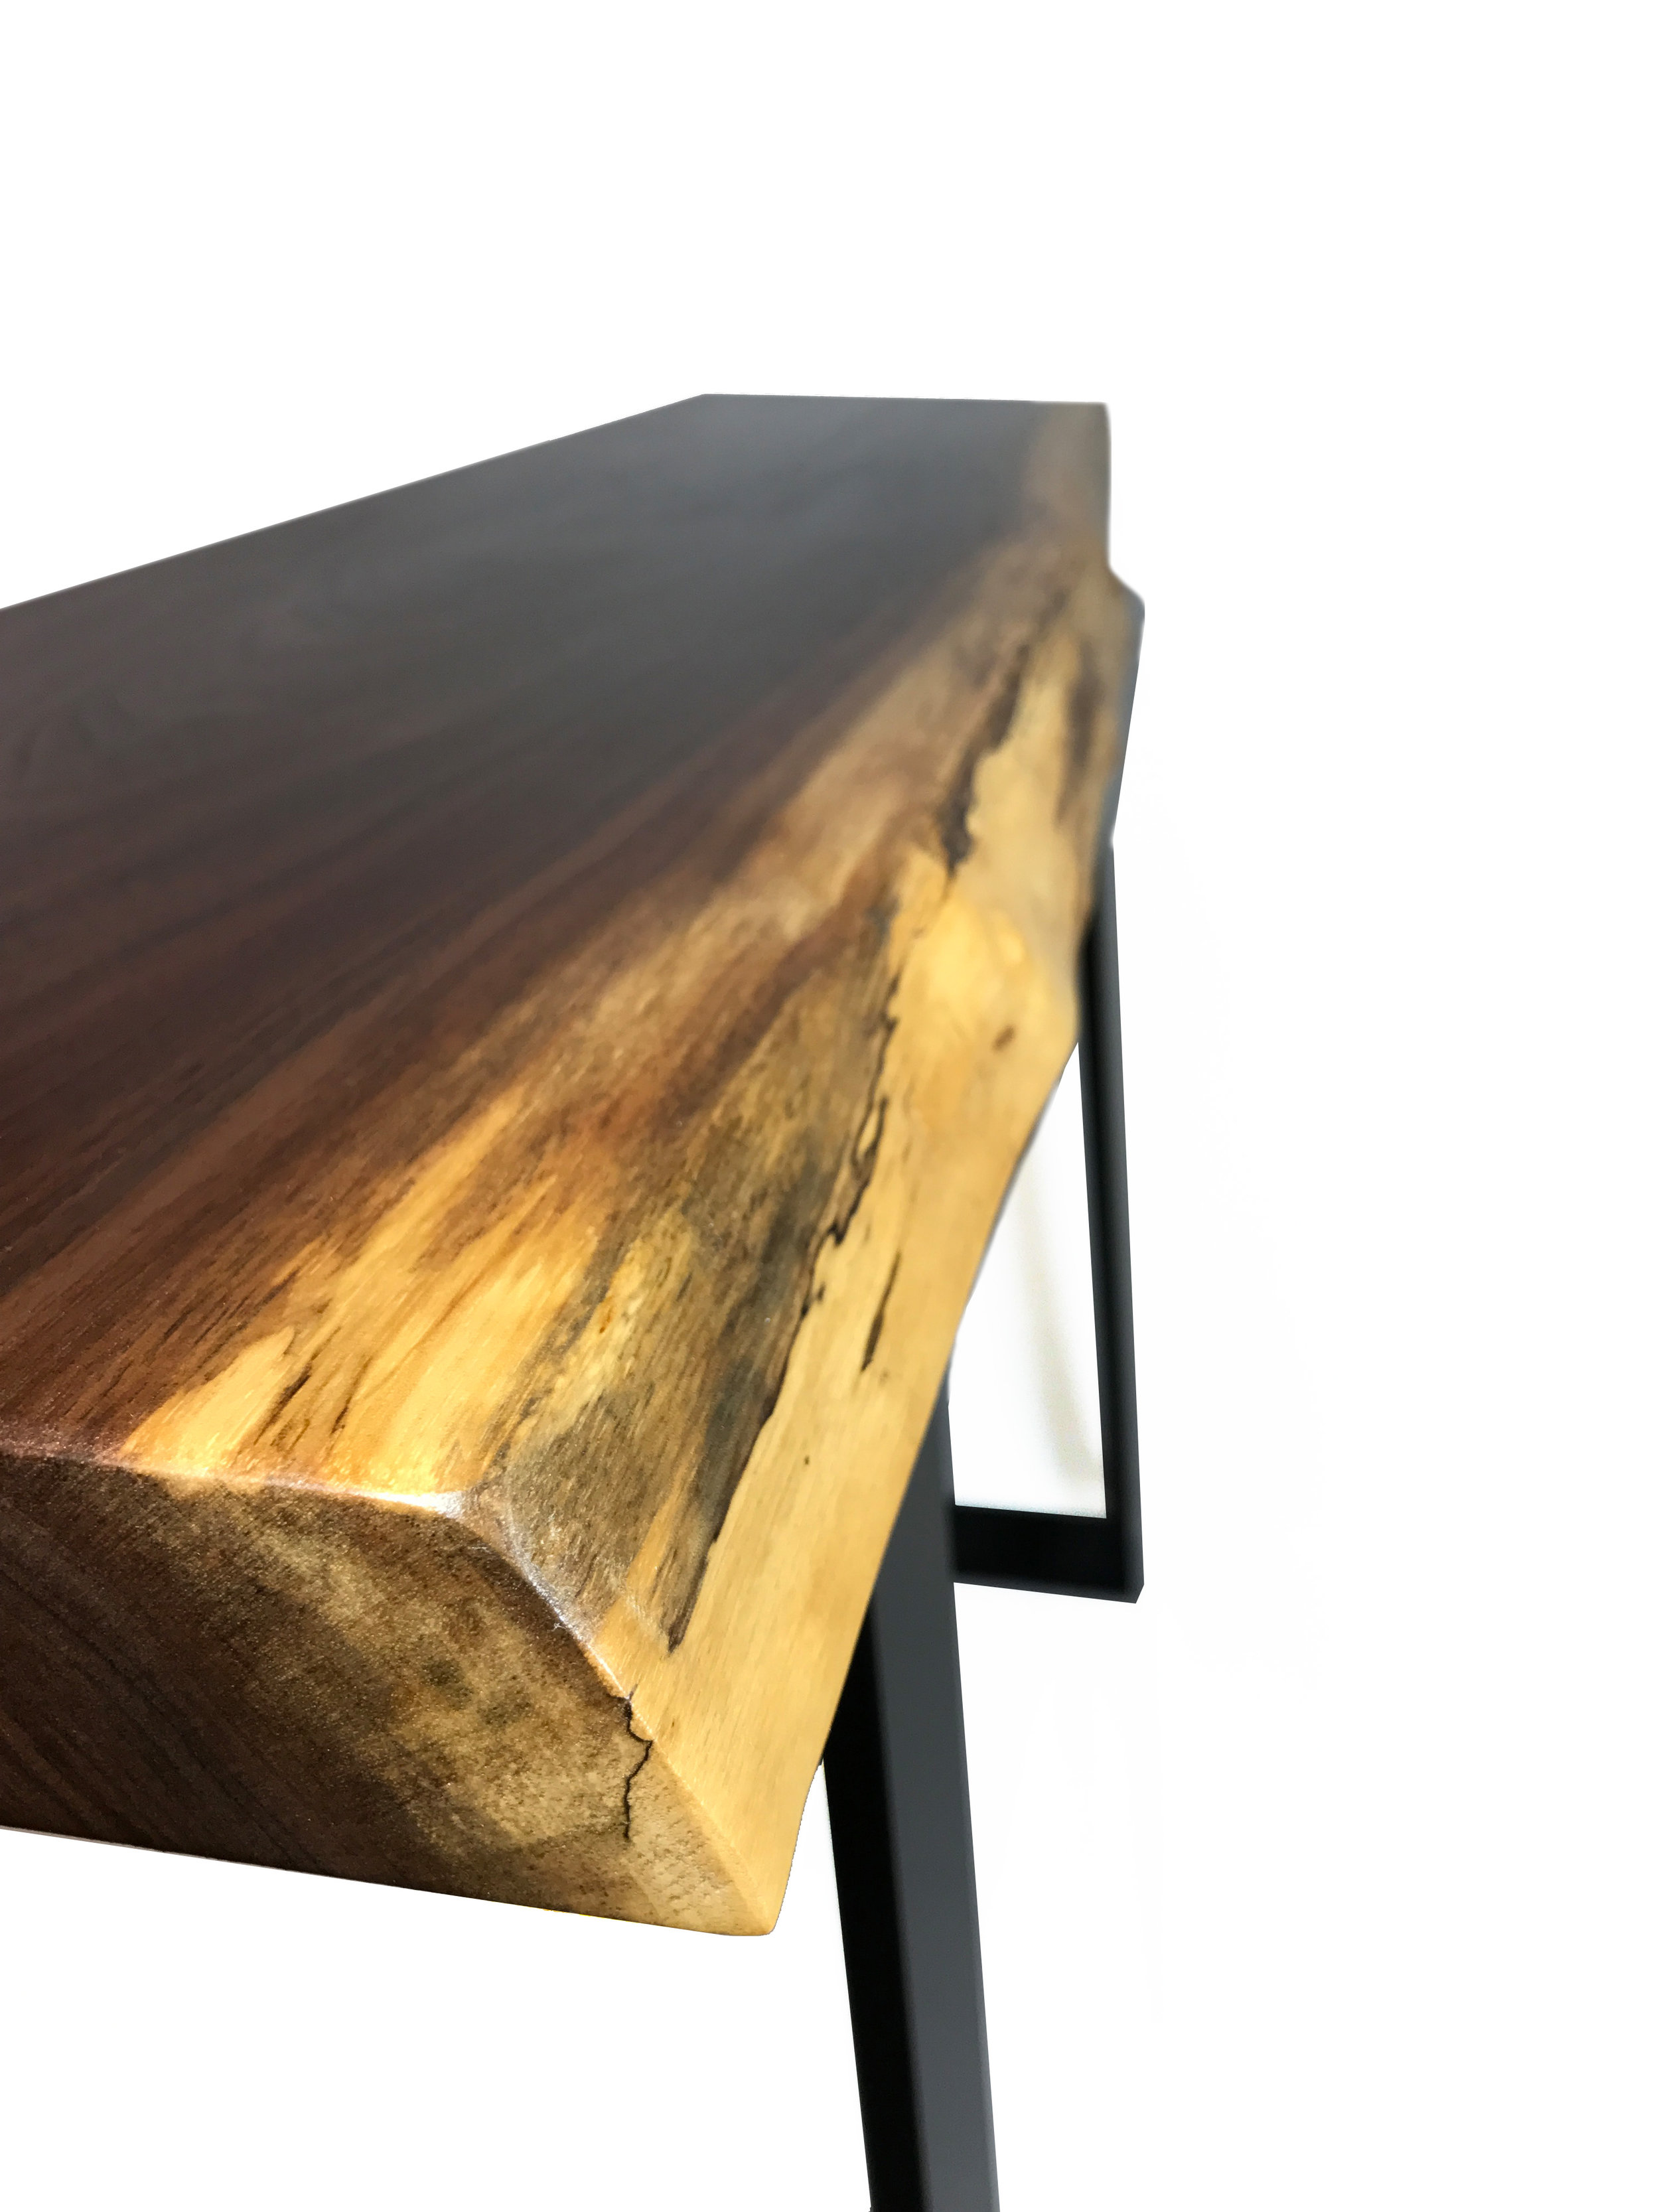 Live Edge Walnut Console Table Edge View